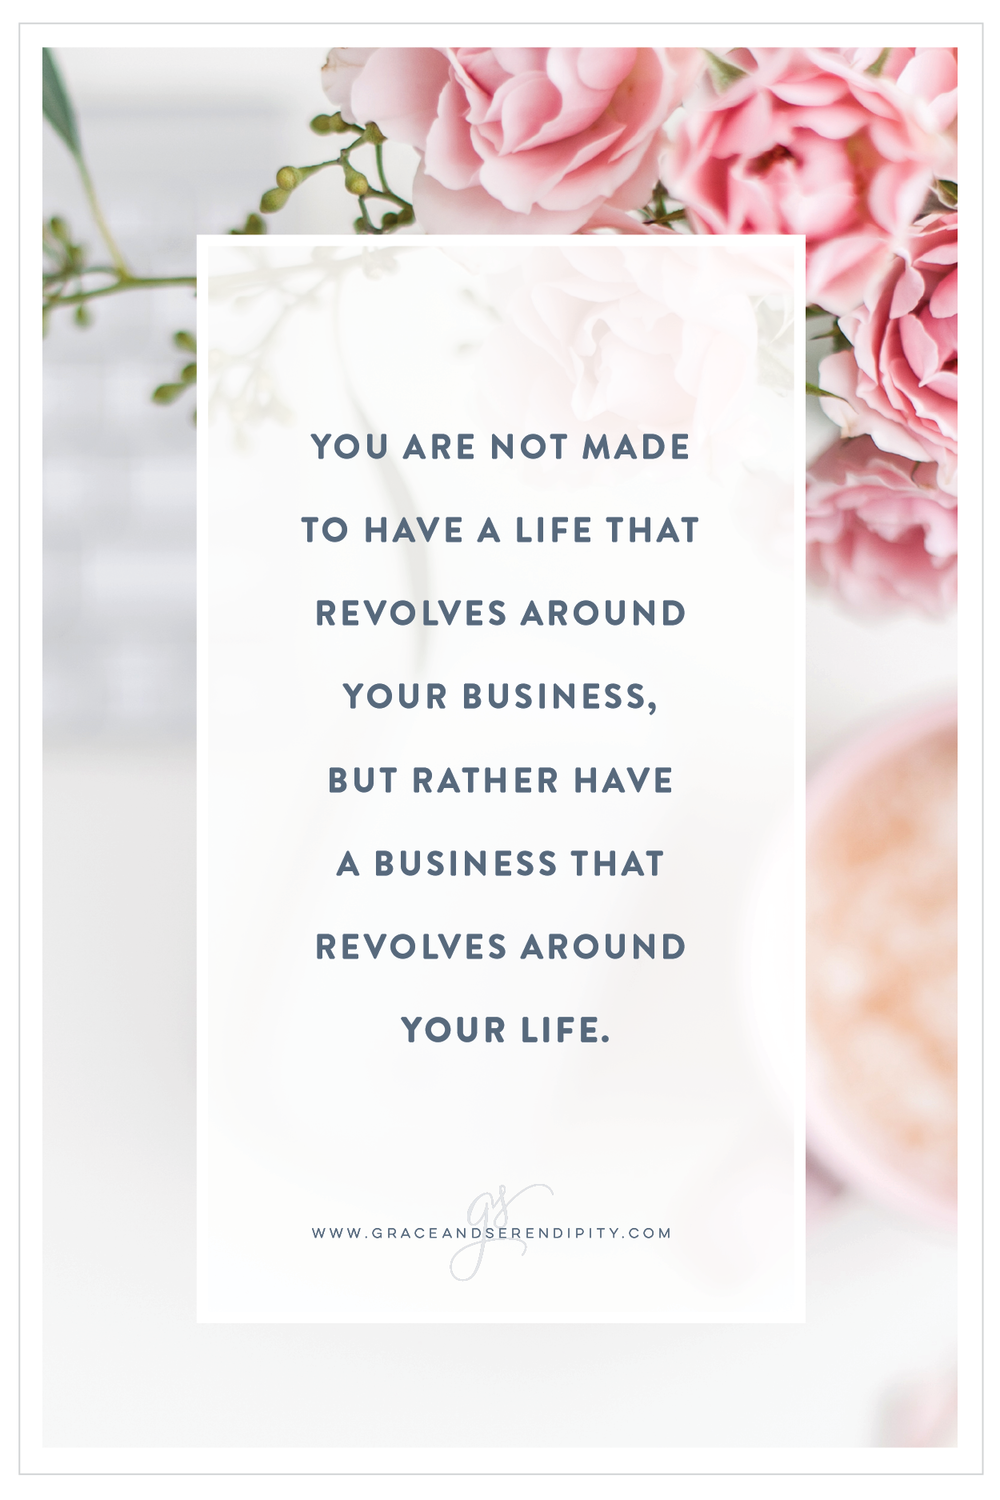 A Note of Grace, Grace and Serendipity - build a life you love that revolves around your business